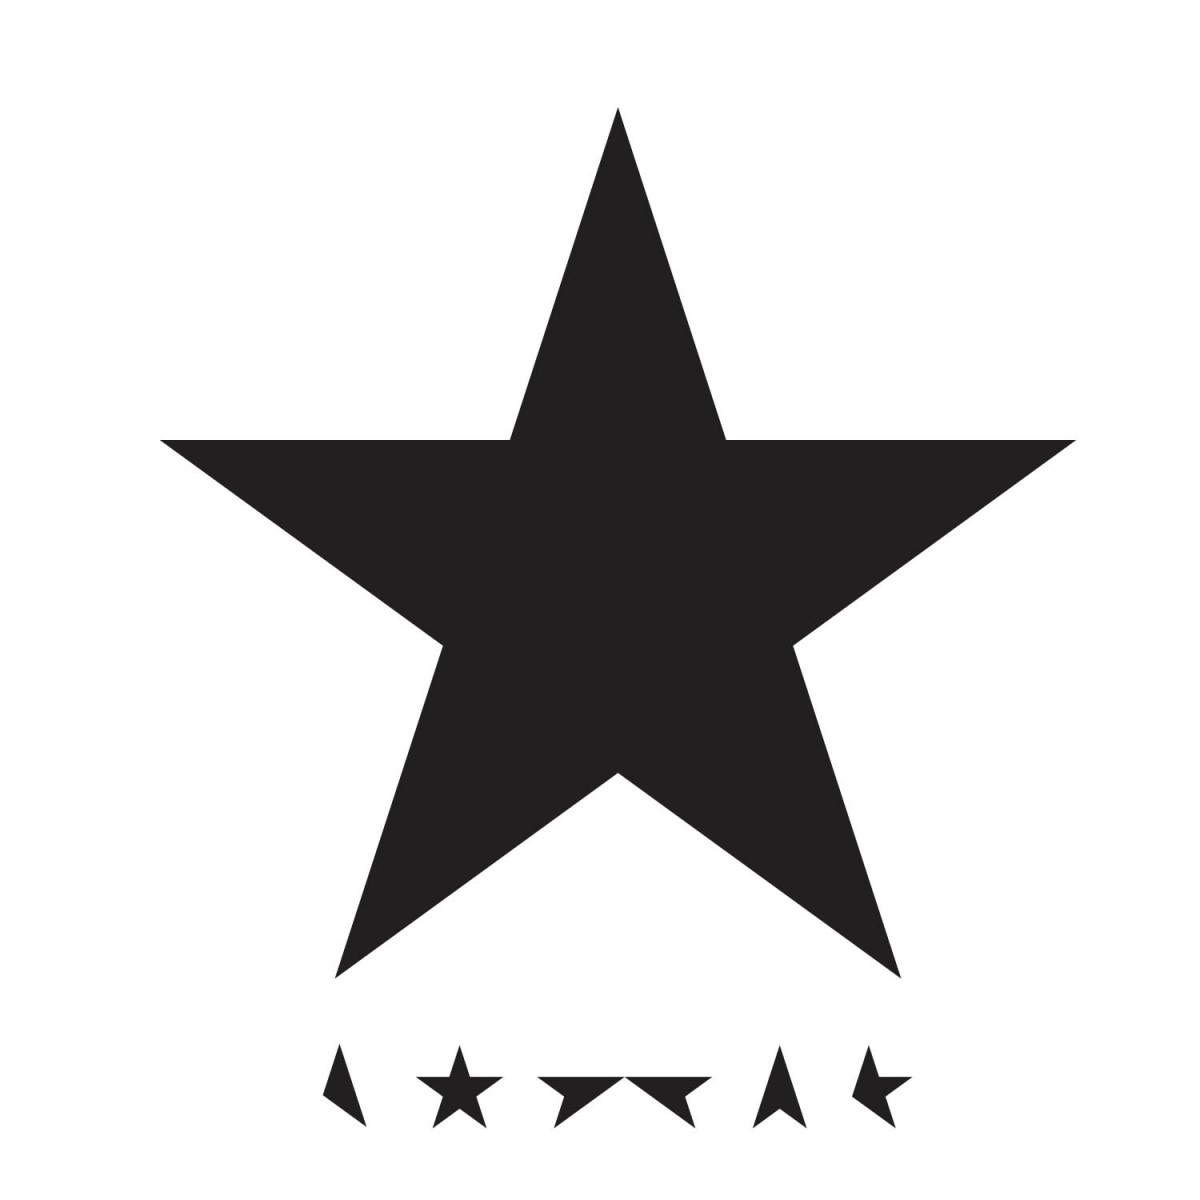 blackstar - david bowie artistic testament